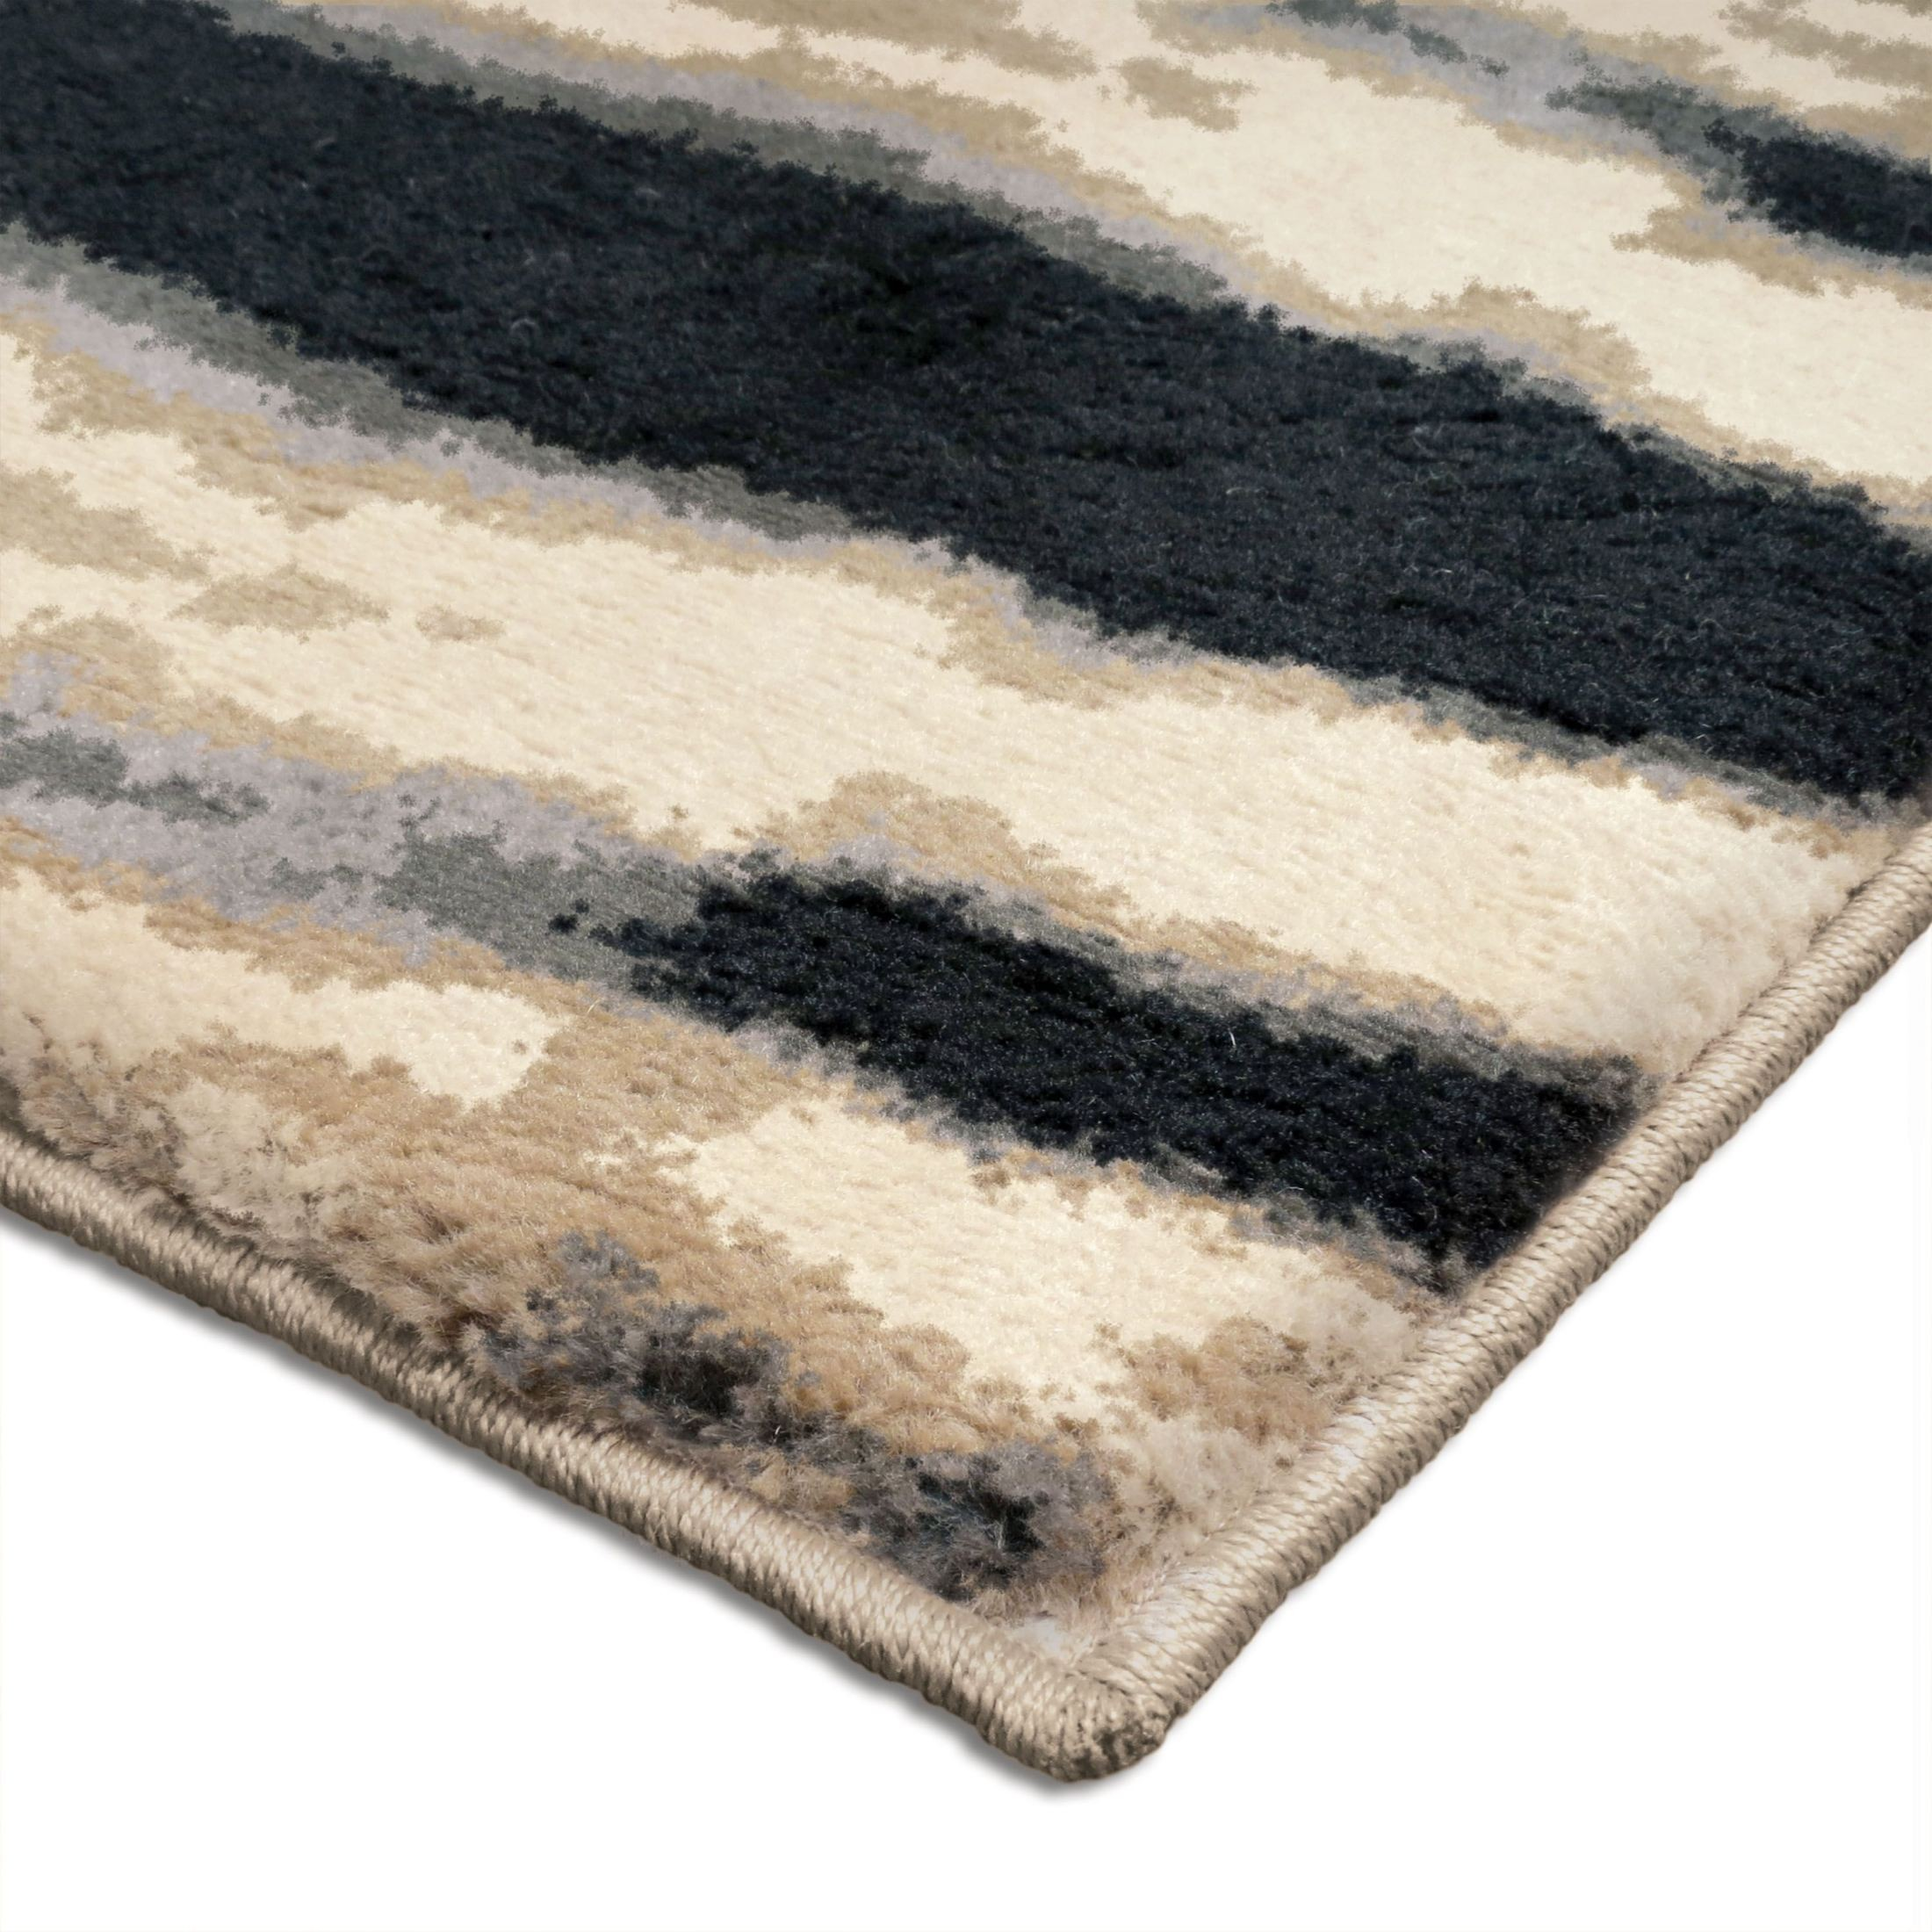 Huge Plush Rug: Orian Rugs Plush Abstract Casa Ivory Area Large Rug, 3417